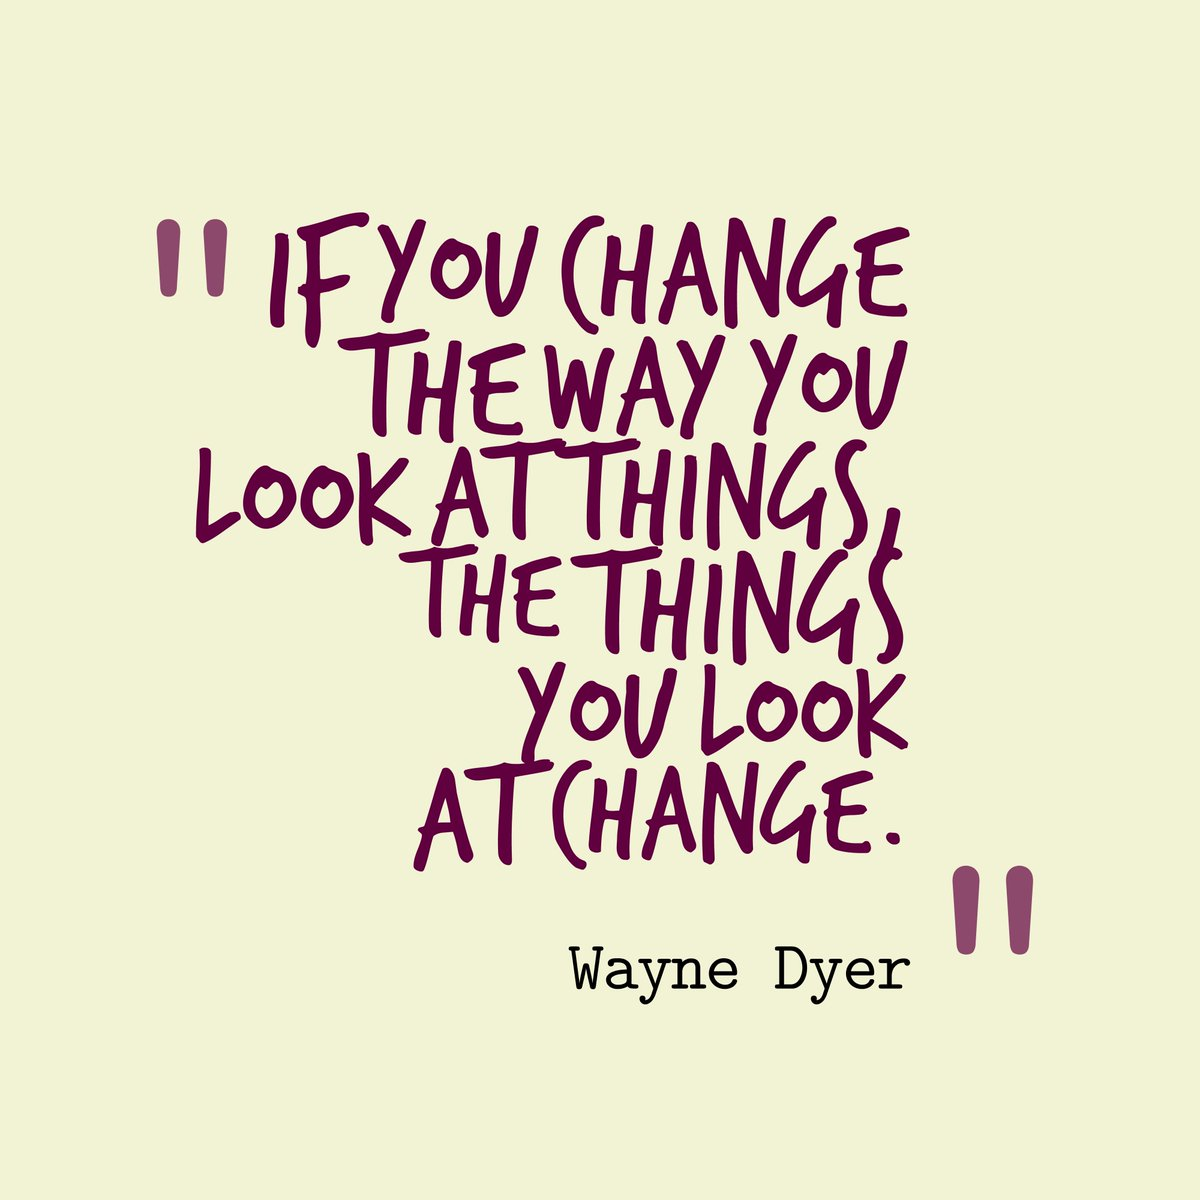 Celebrating 1 year since @DrWayneWDyer transitioned. Please share with us your favorite #WayneDyer quotes. https://t.co/334nfkcWbH